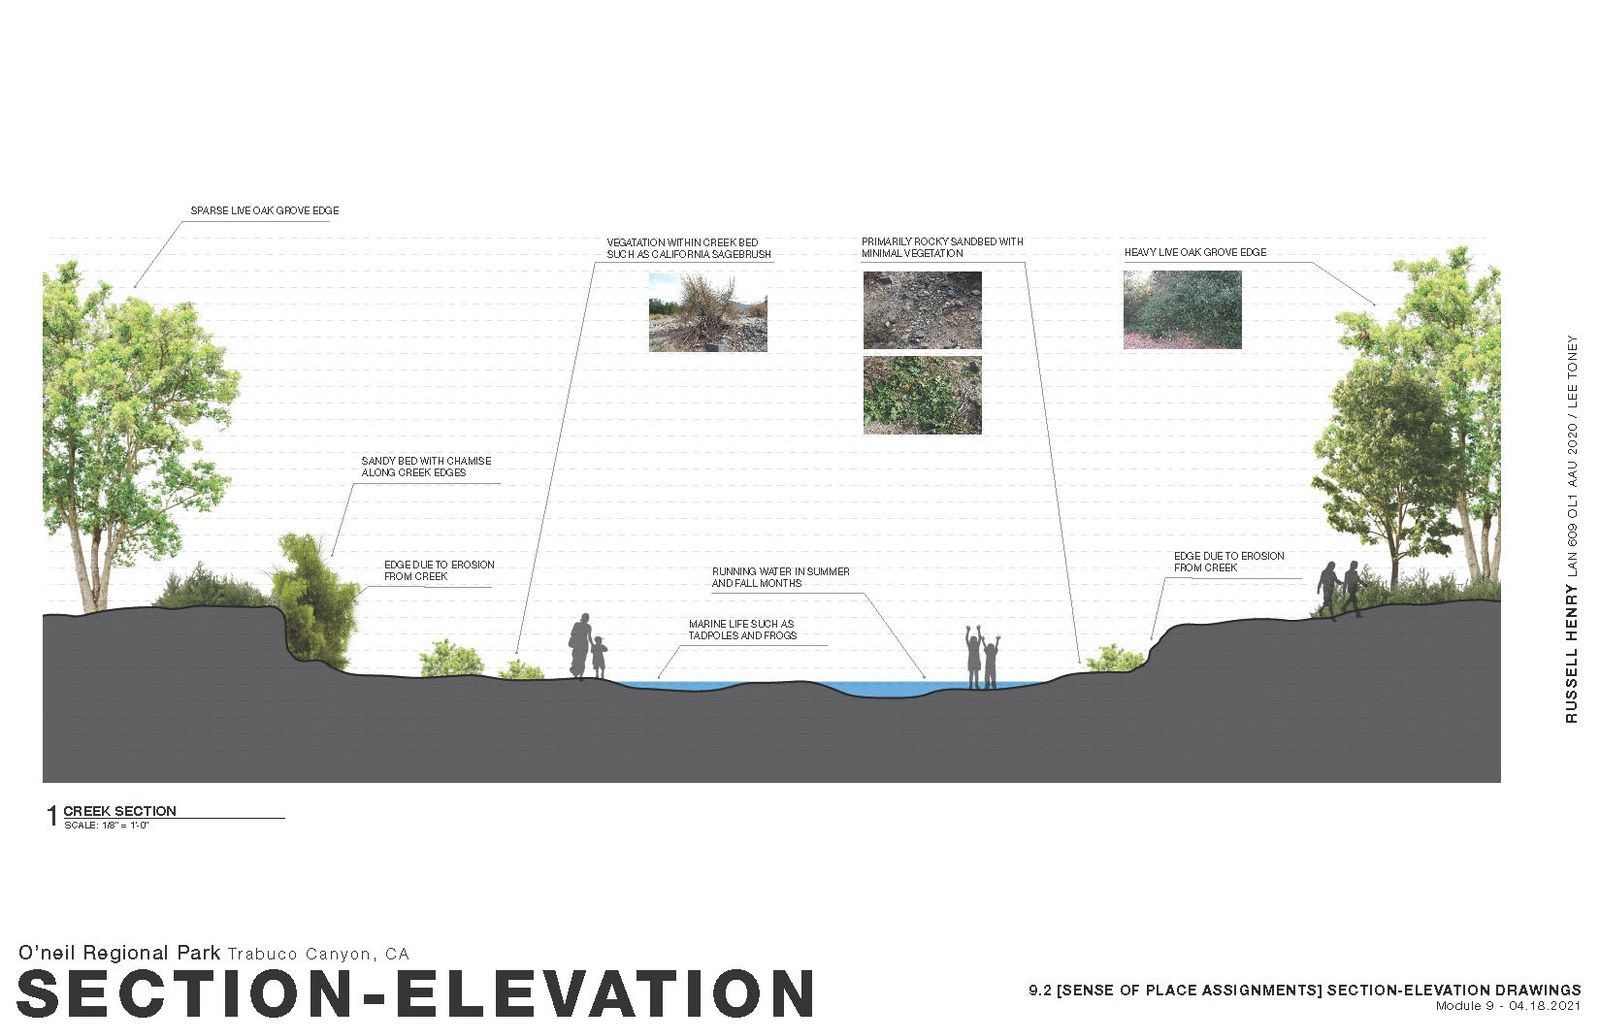 Sense of Place - Section-Elevation 1